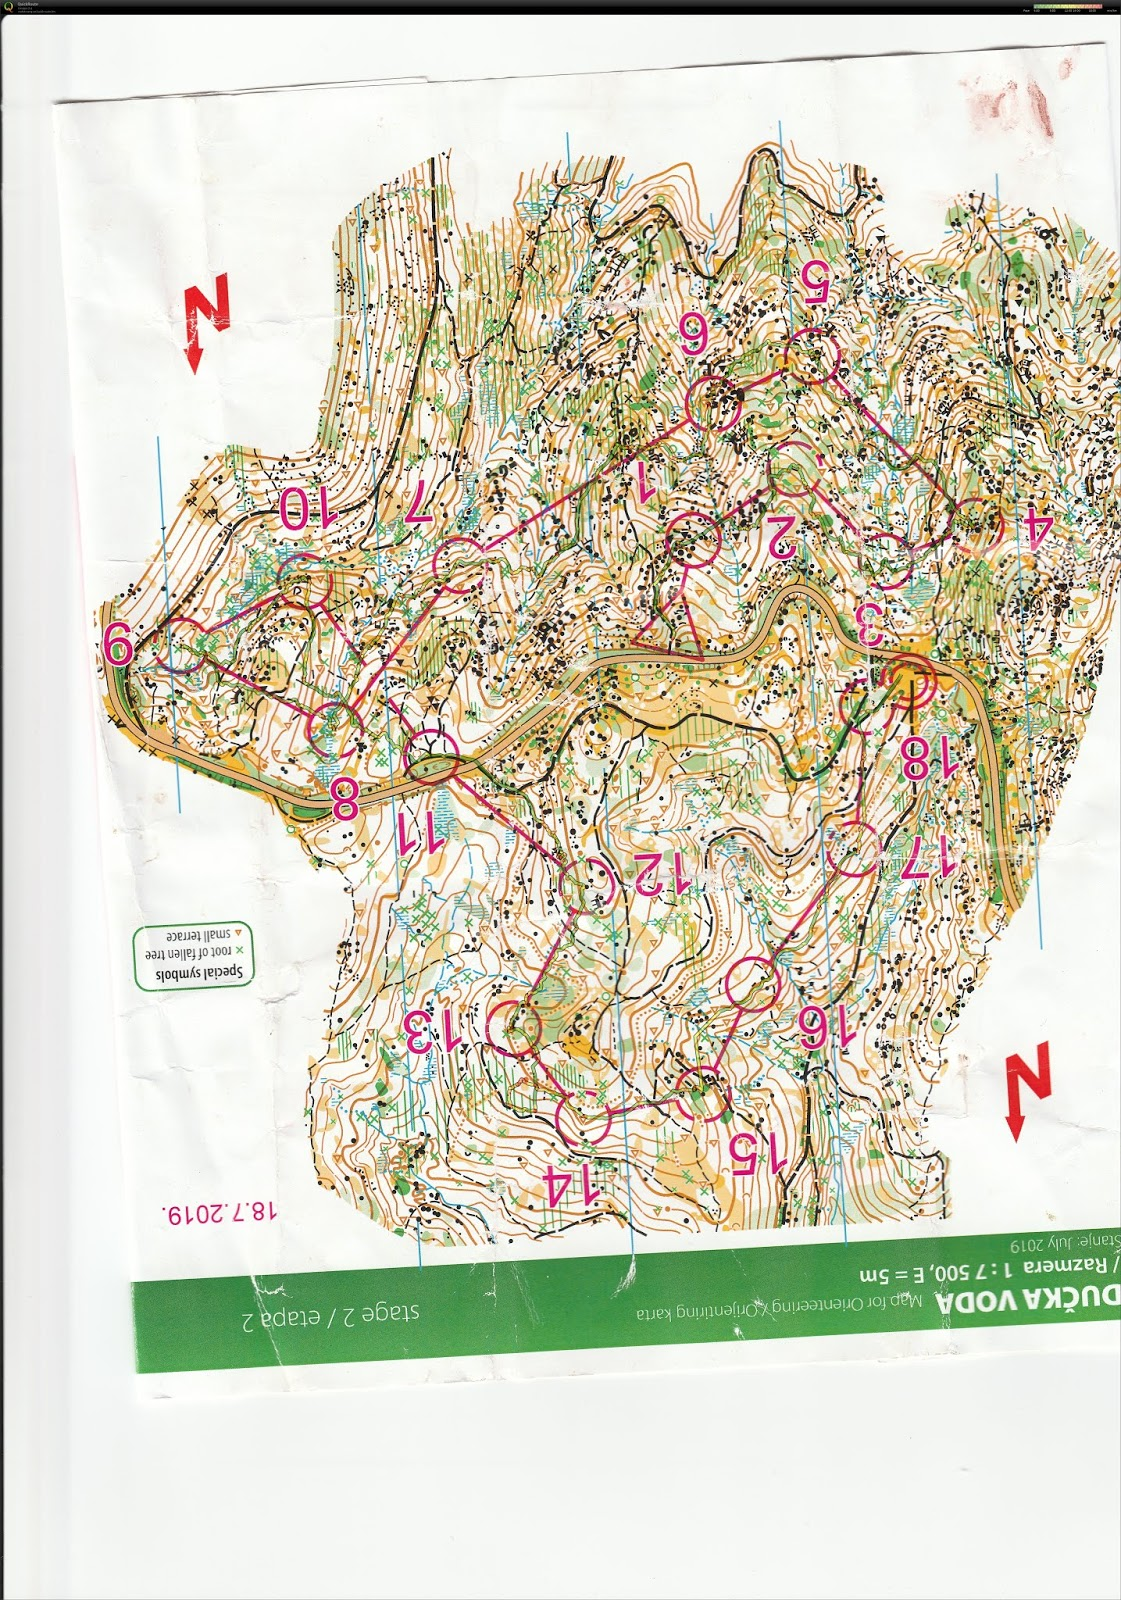 Sava Lazic Orienteering Blog Long And Middle Distance Runner